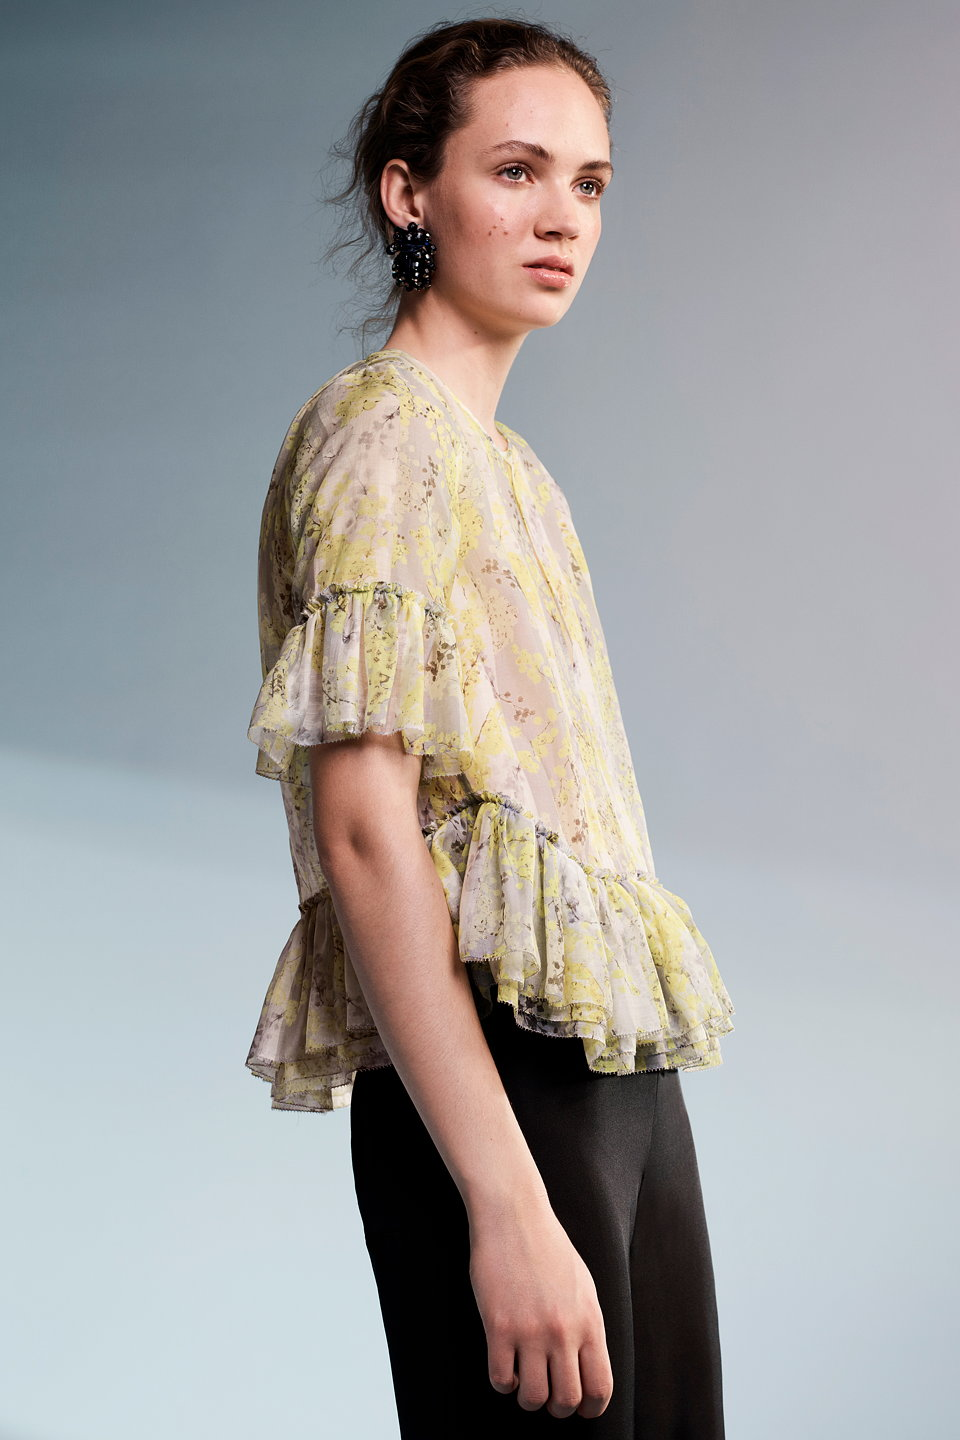 H&m party a unveils collection for forecasting dress in spring in 2019